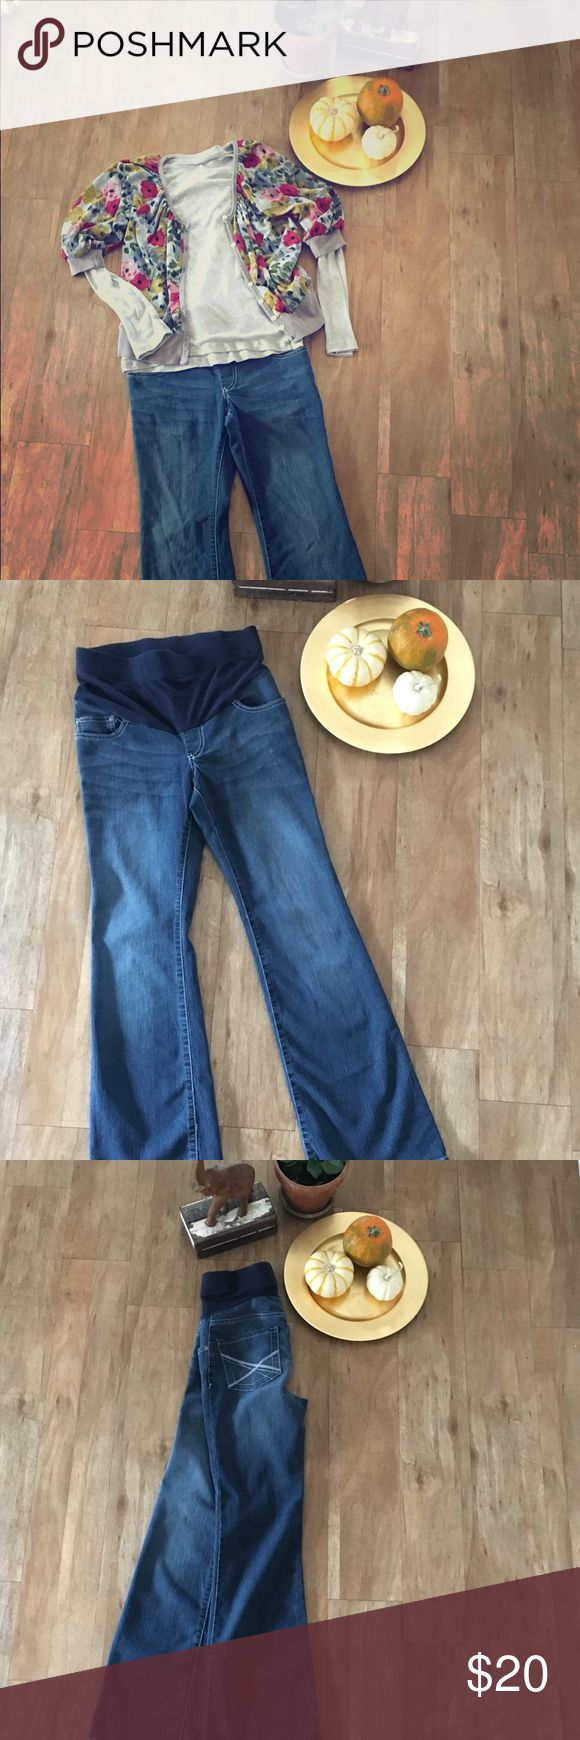 Onyx Maternity Jeans These jeans are comfortable to wear during and after pregnancy!  Size small, 78% cotton, 21% polyester, and 1% spandex. Onyx Jeans Boot Cut